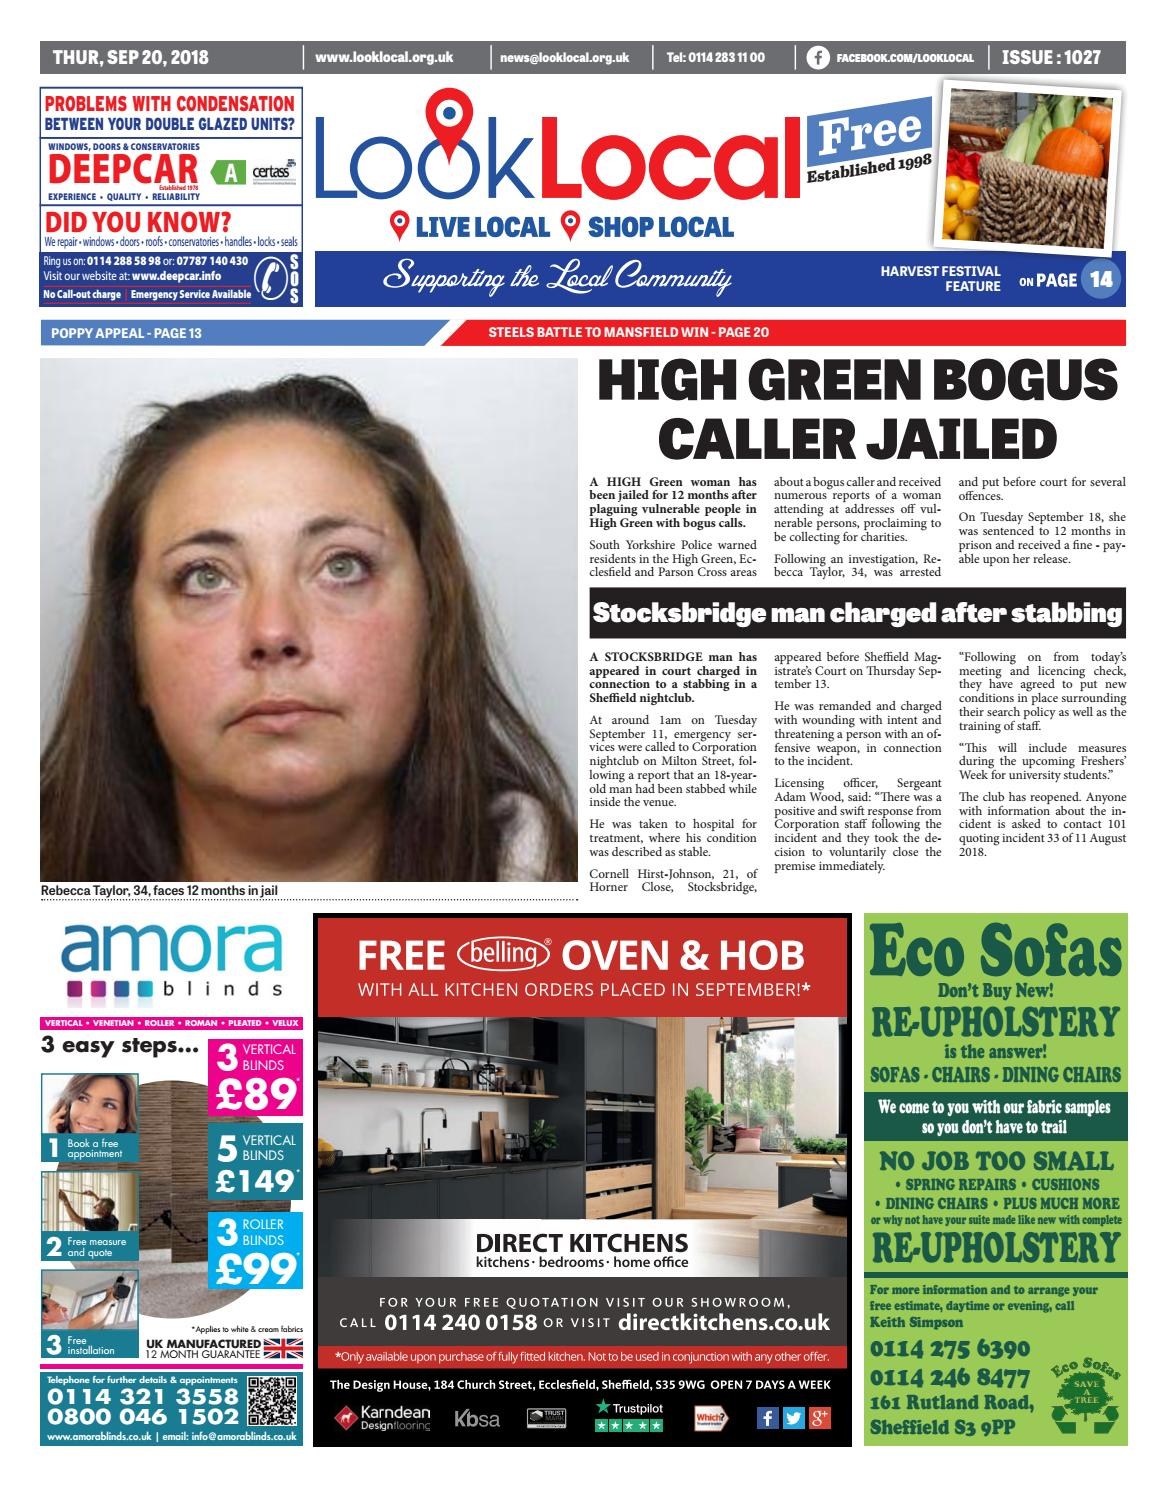 58e24d974a Issue 1027 Thursday 20 September 2018 by Look Local Newspaper - issuu